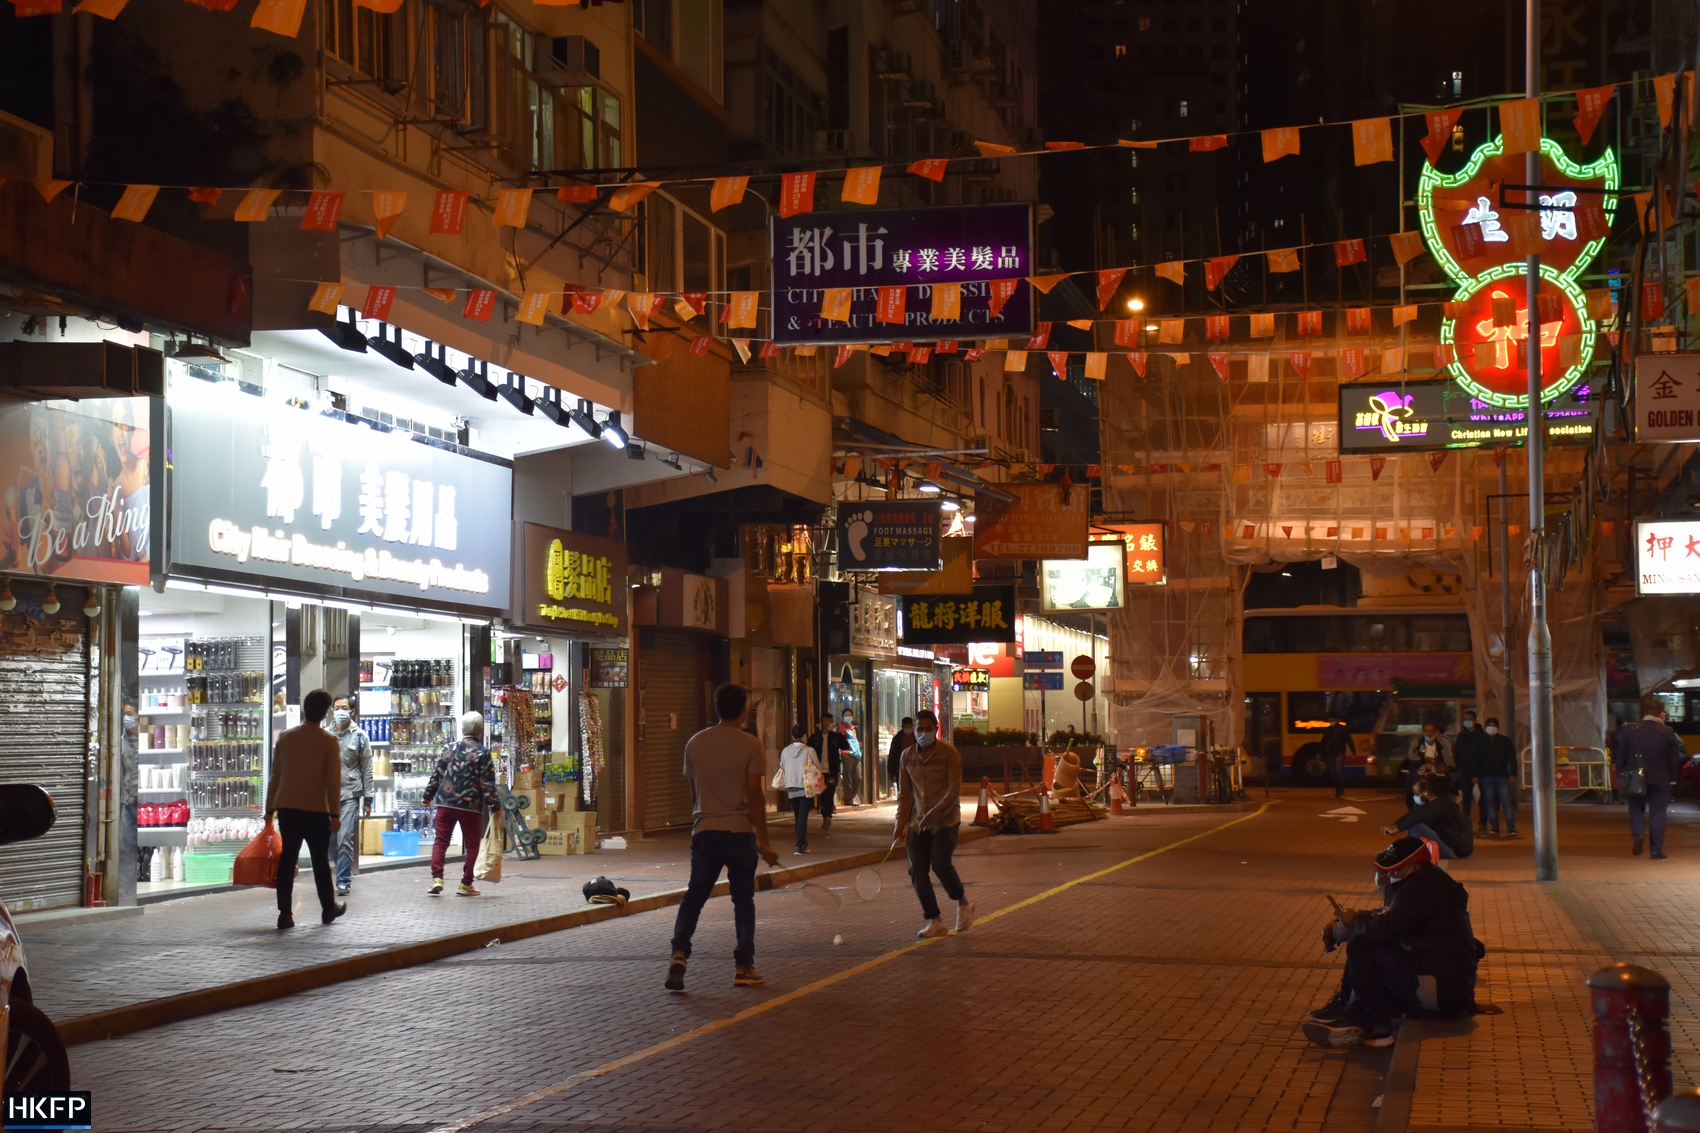 Residents playing badminton in Yau Ma Tei